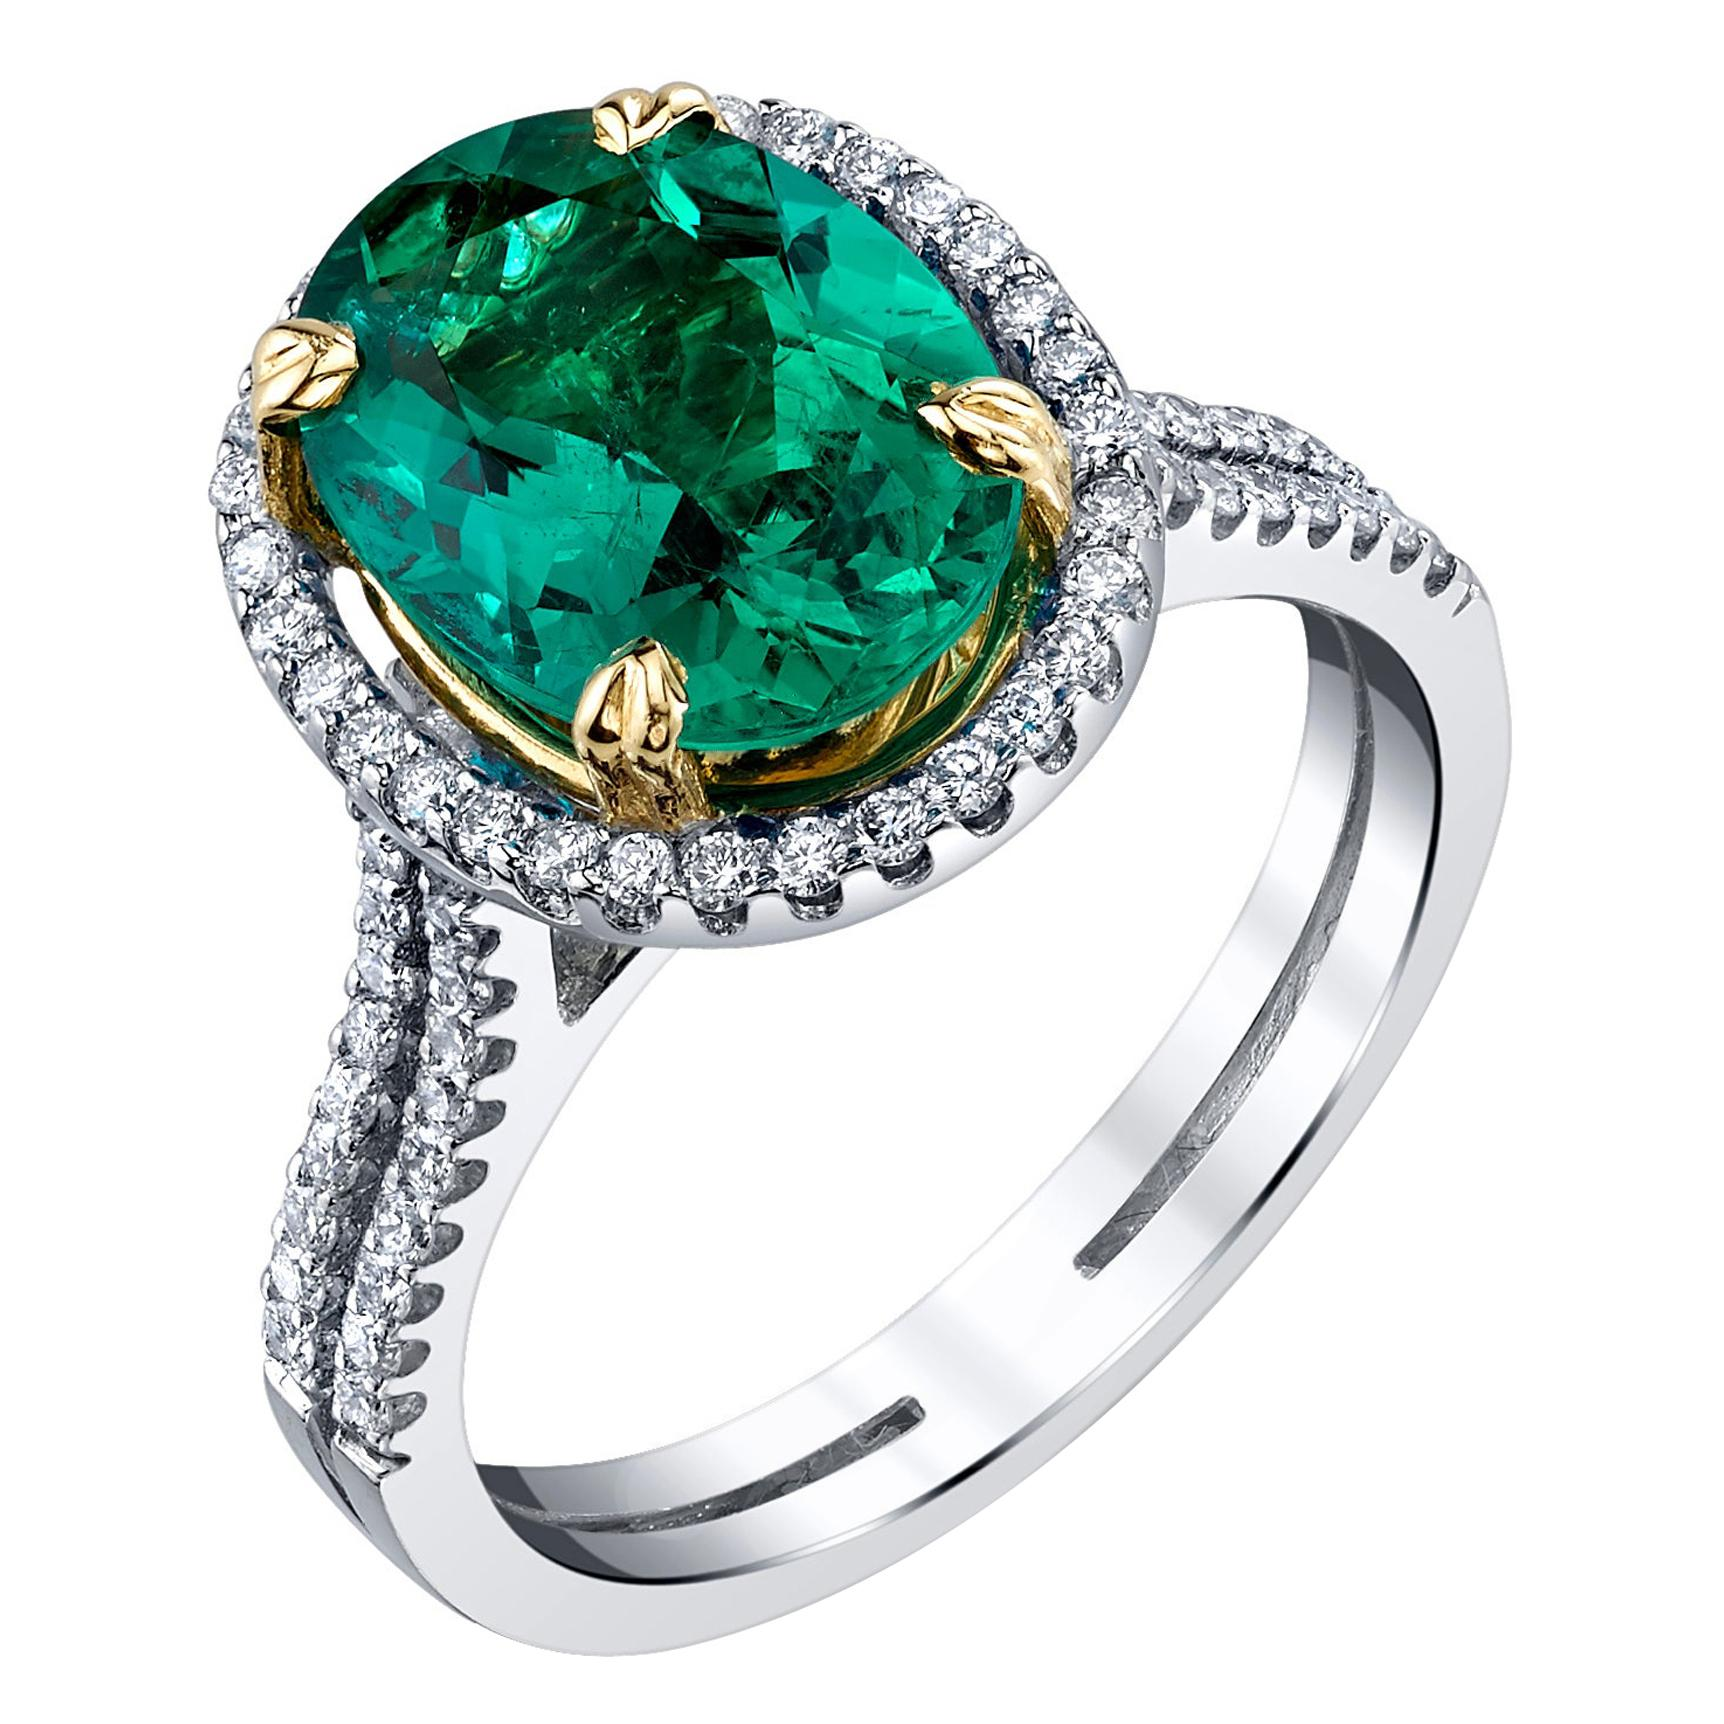 2.55 Carat Oval Emerald and Diamond Halo White, Yellow Gold Cocktail Ring